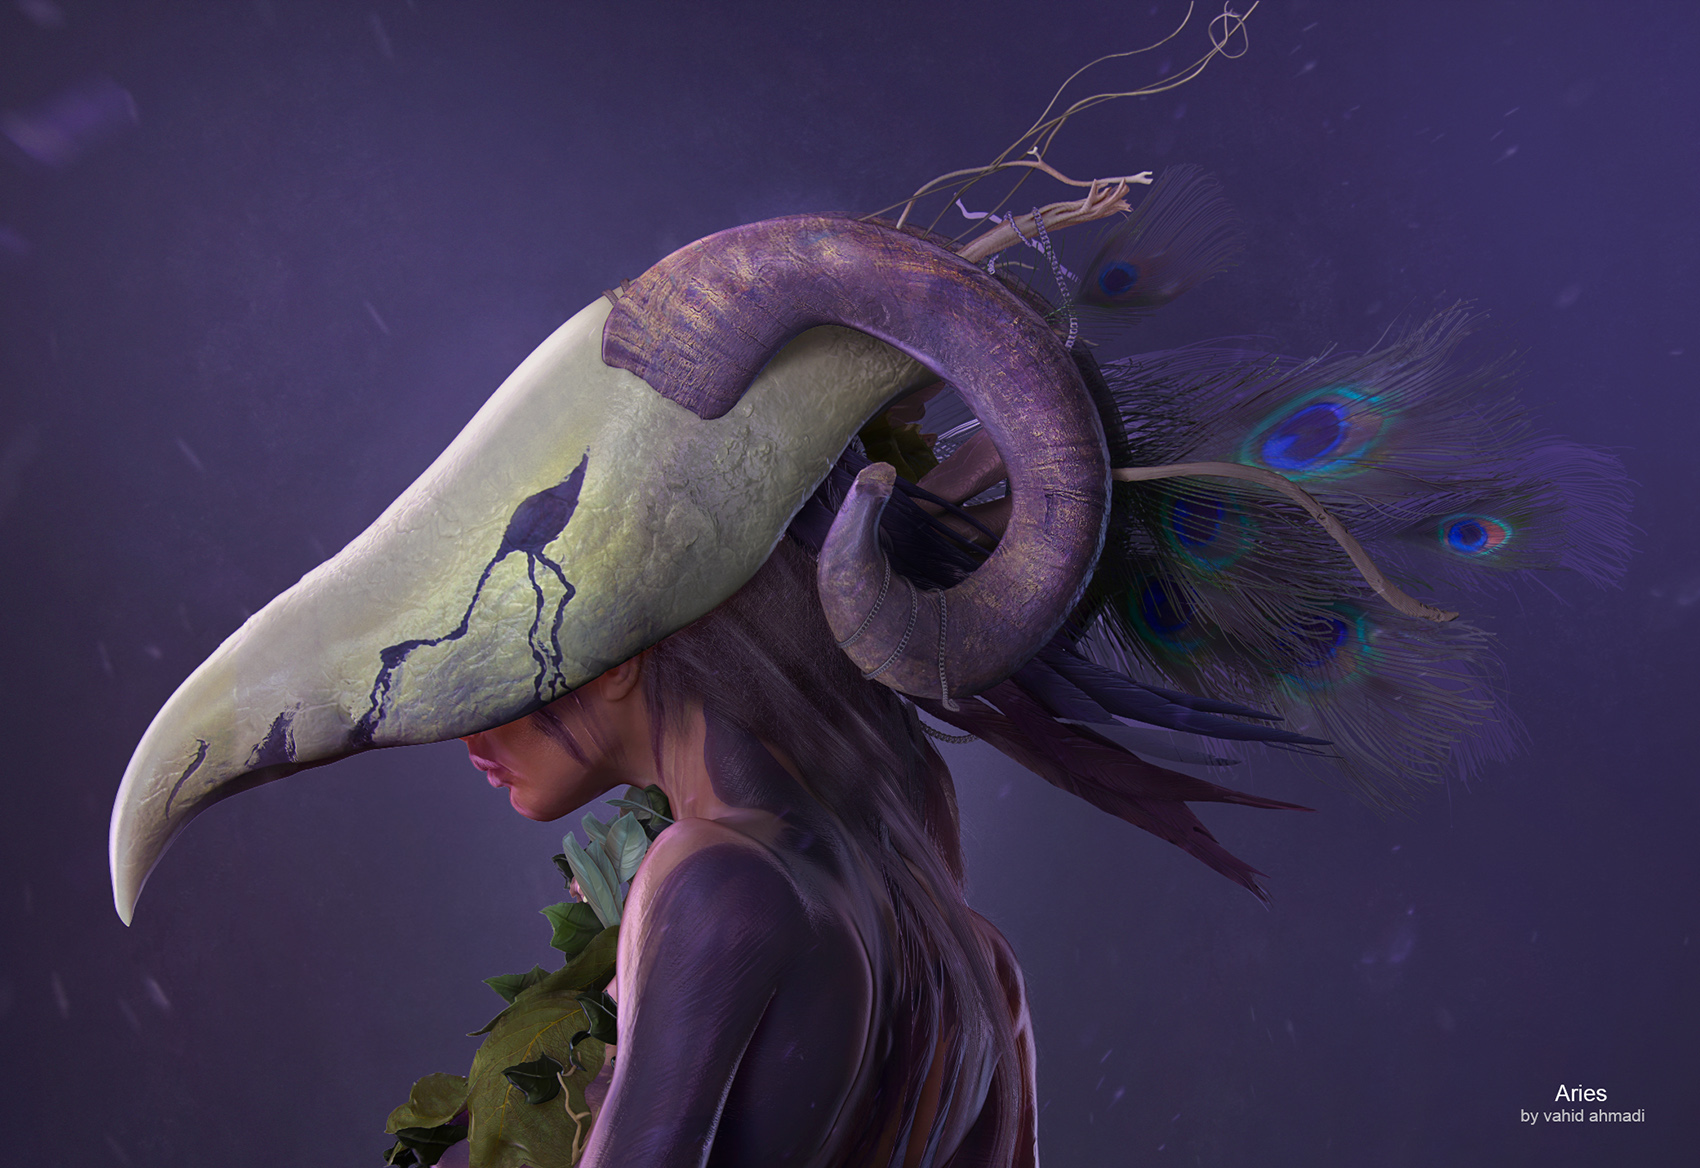 0d. Aries zbrush work by vahid ahmadi.jpg